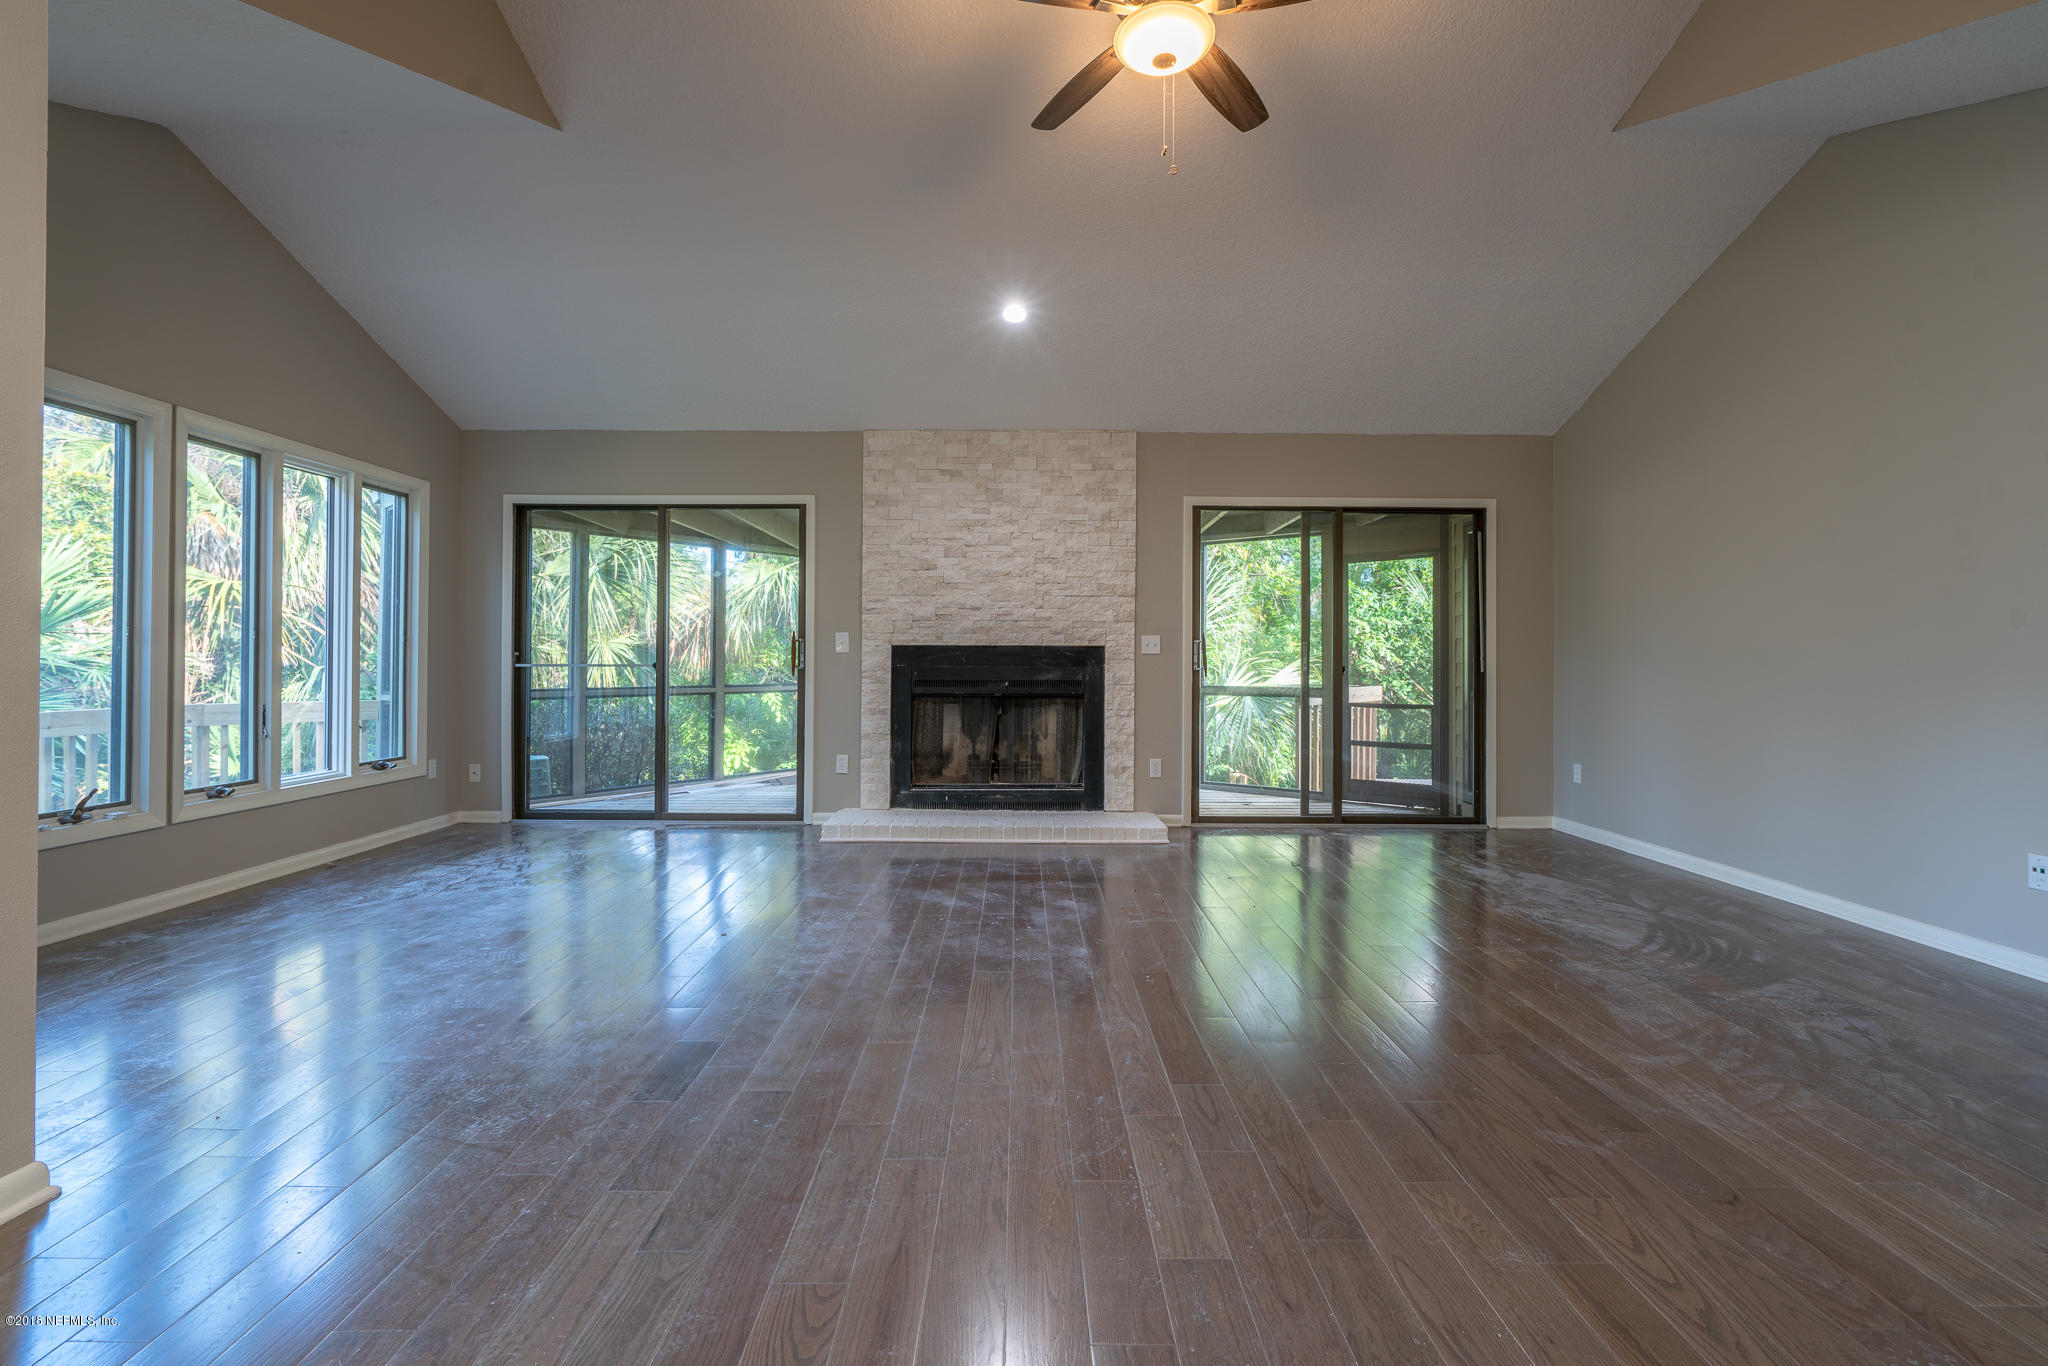 66 Fishermans Cove, PONTE VEDRA BEACH, FLORIDA 32082, 2 Bedrooms Bedrooms, ,2 BathroomsBathrooms,Residential - condos/townhomes,For sale,Fishermans Cove,949830